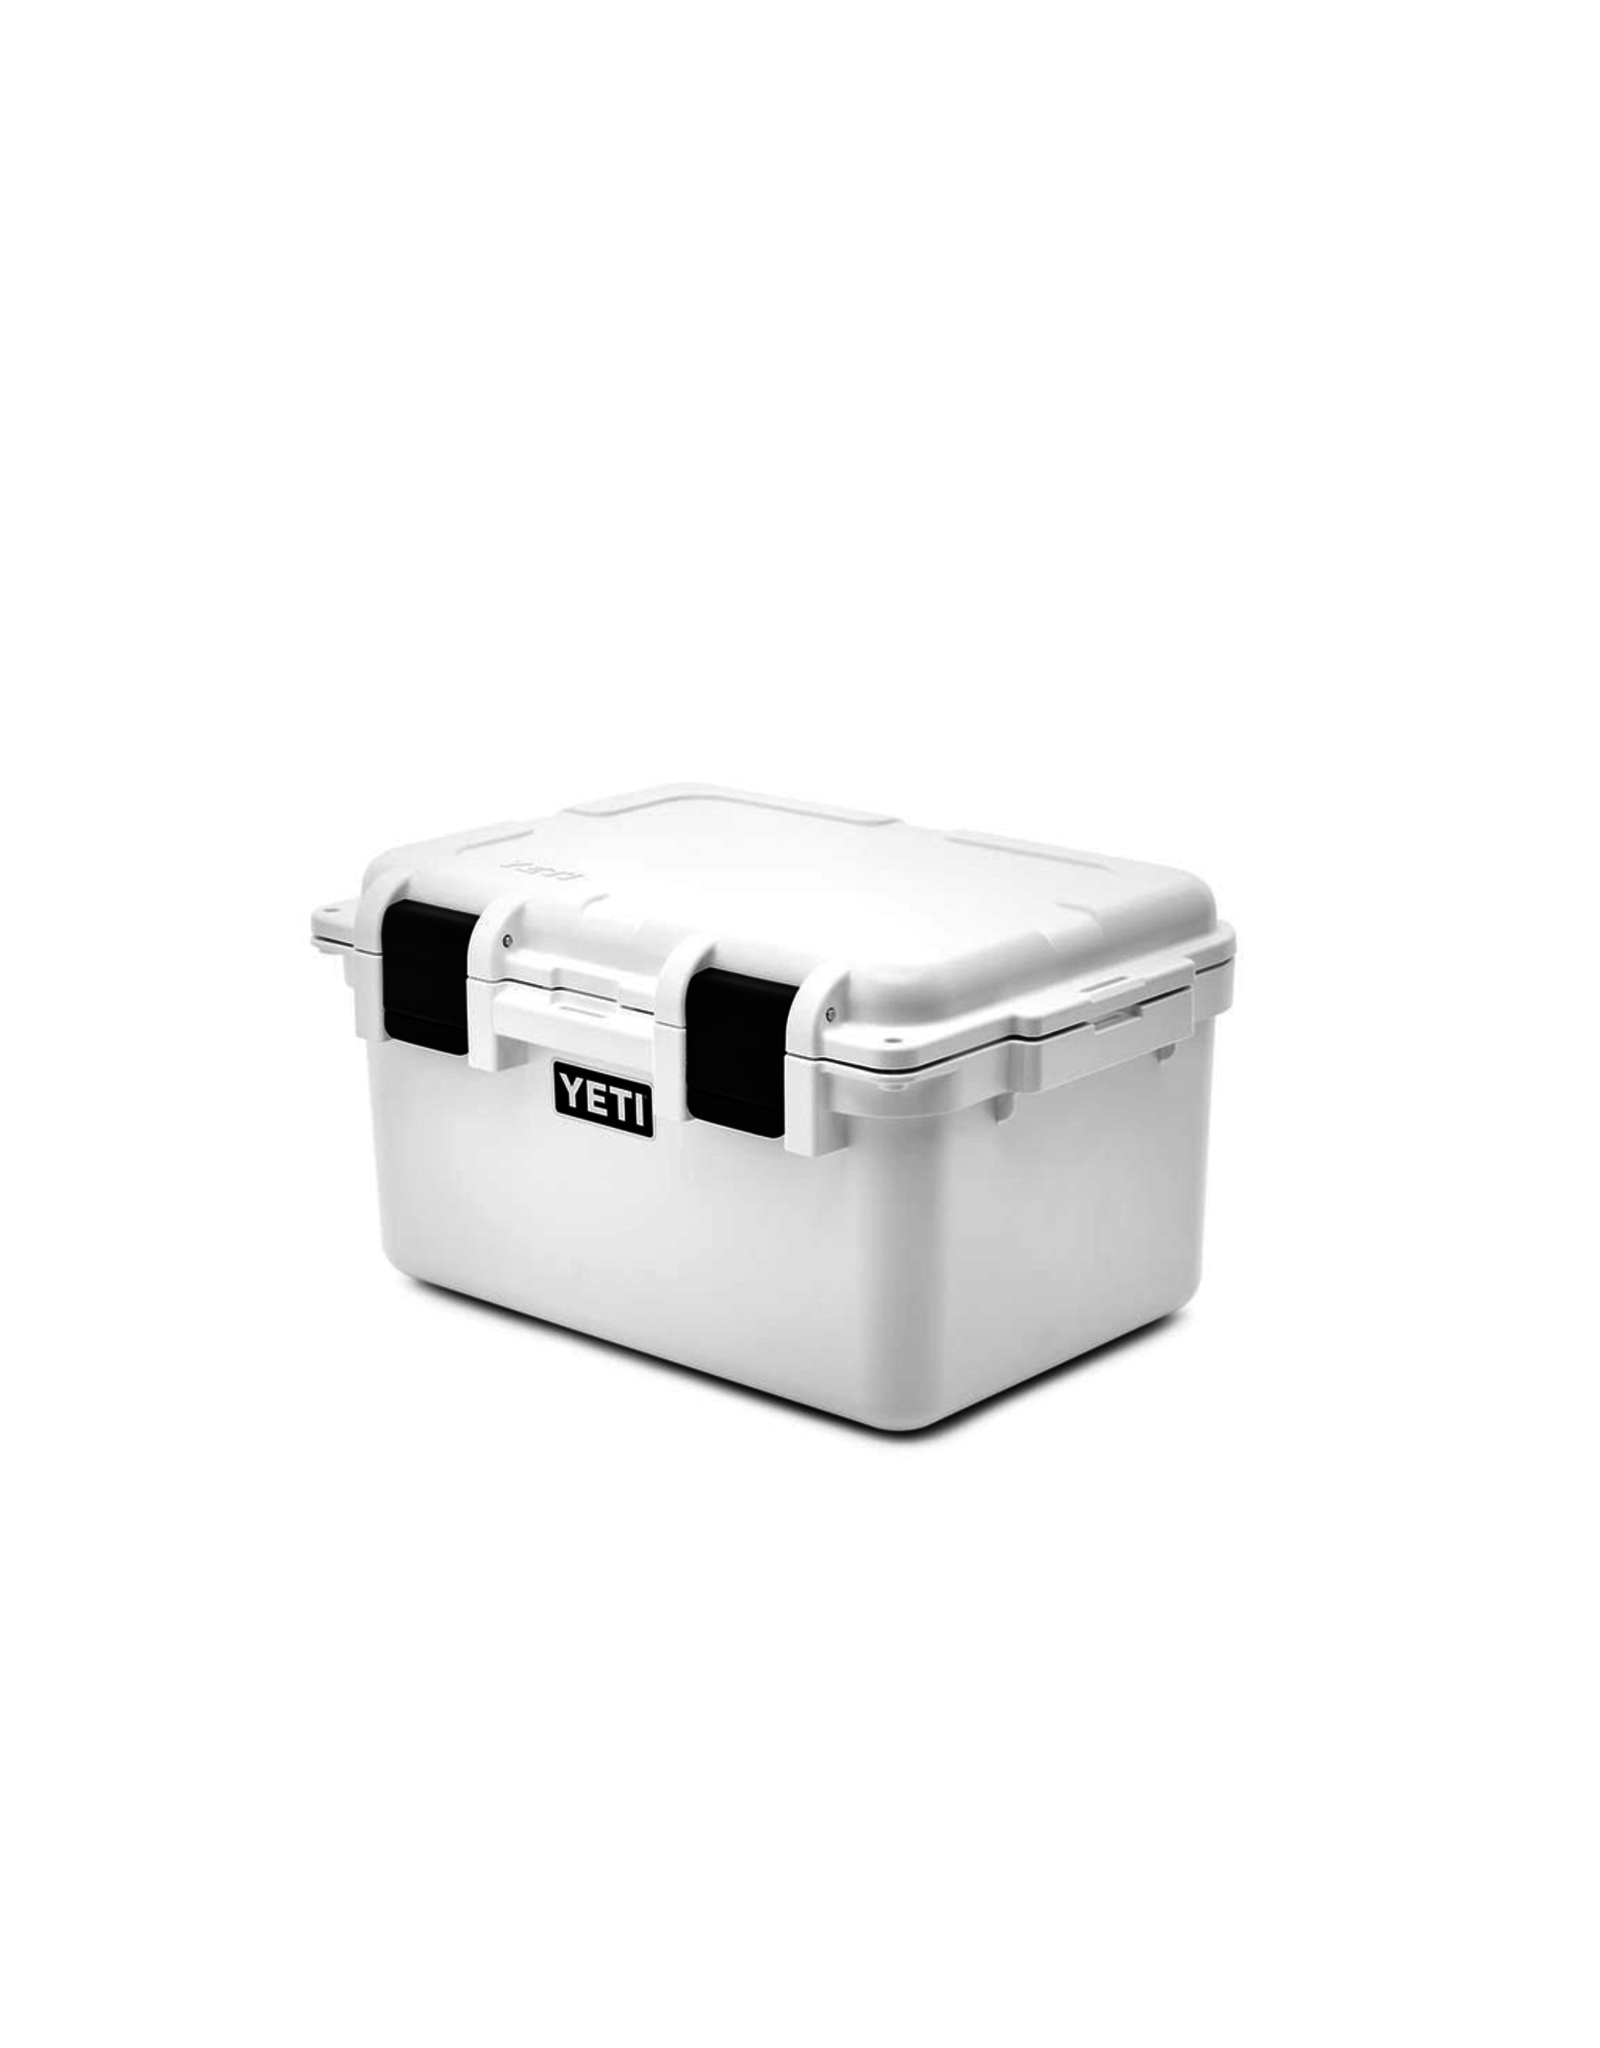 Yeti Yeti Loadout Gobox 30 White